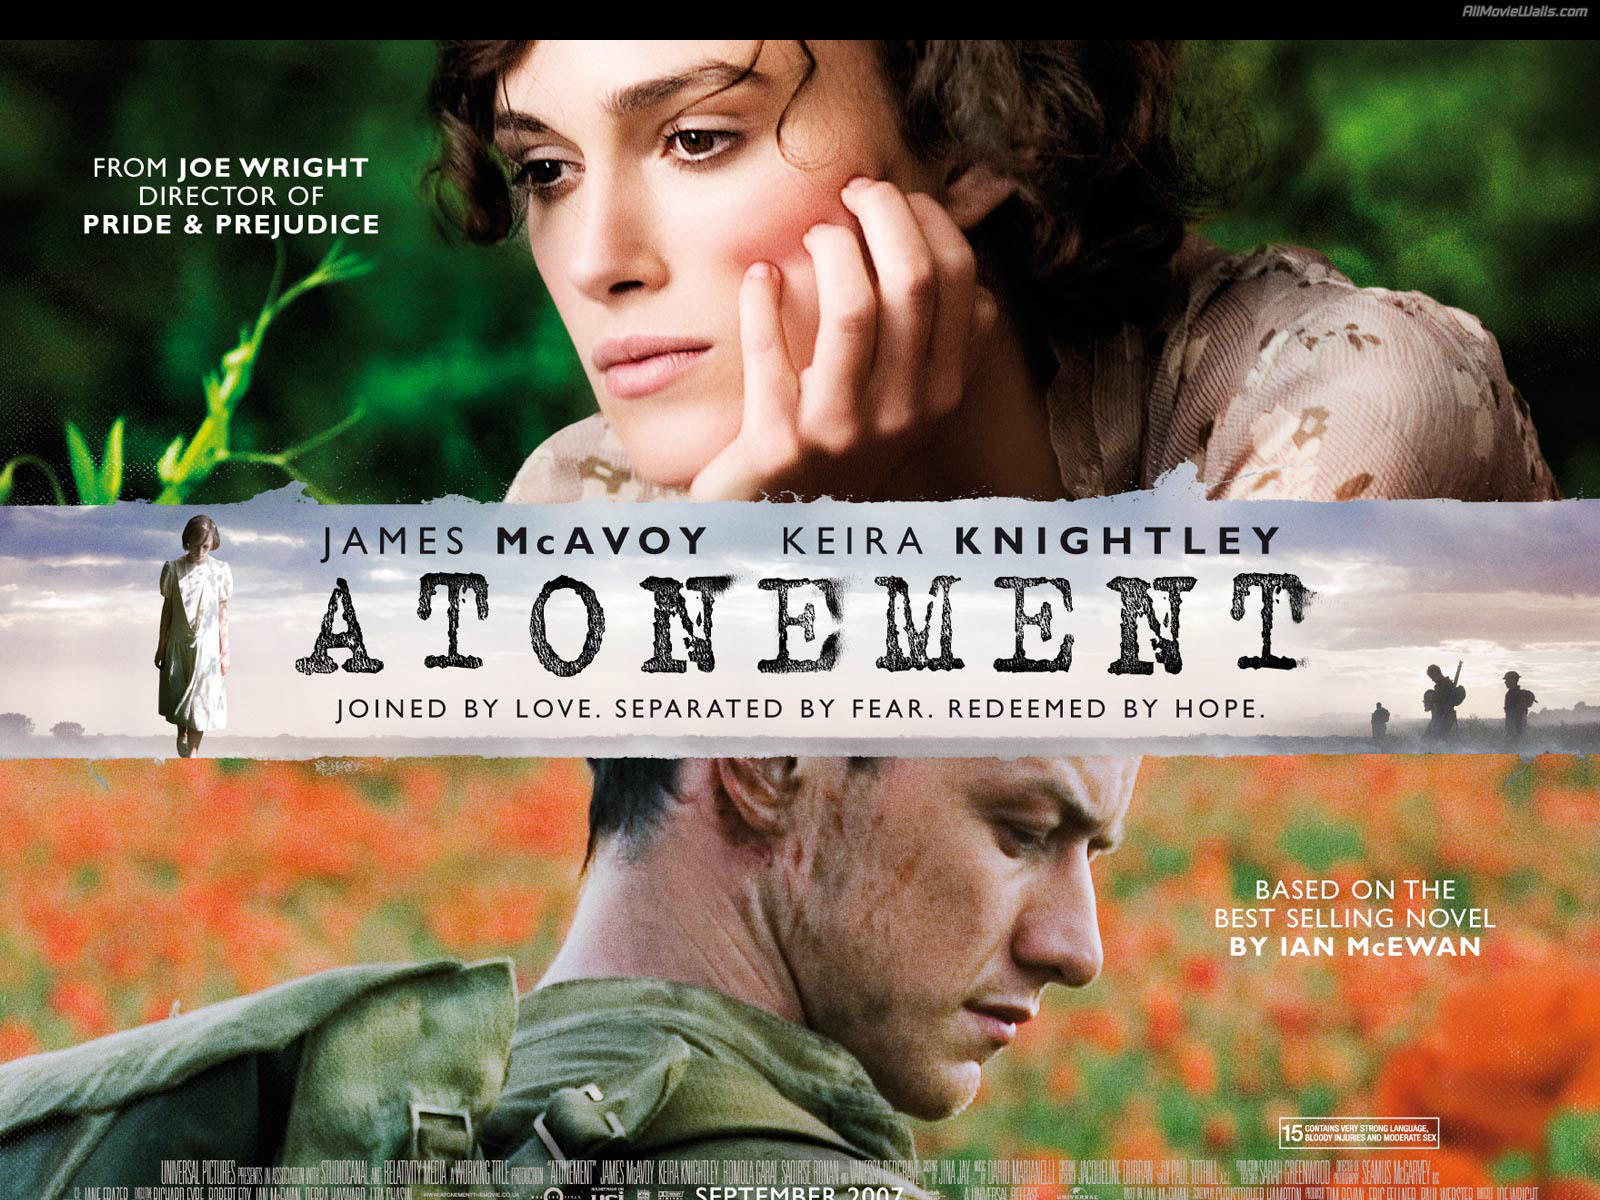 Low-key Golden Globes sees Atonement win